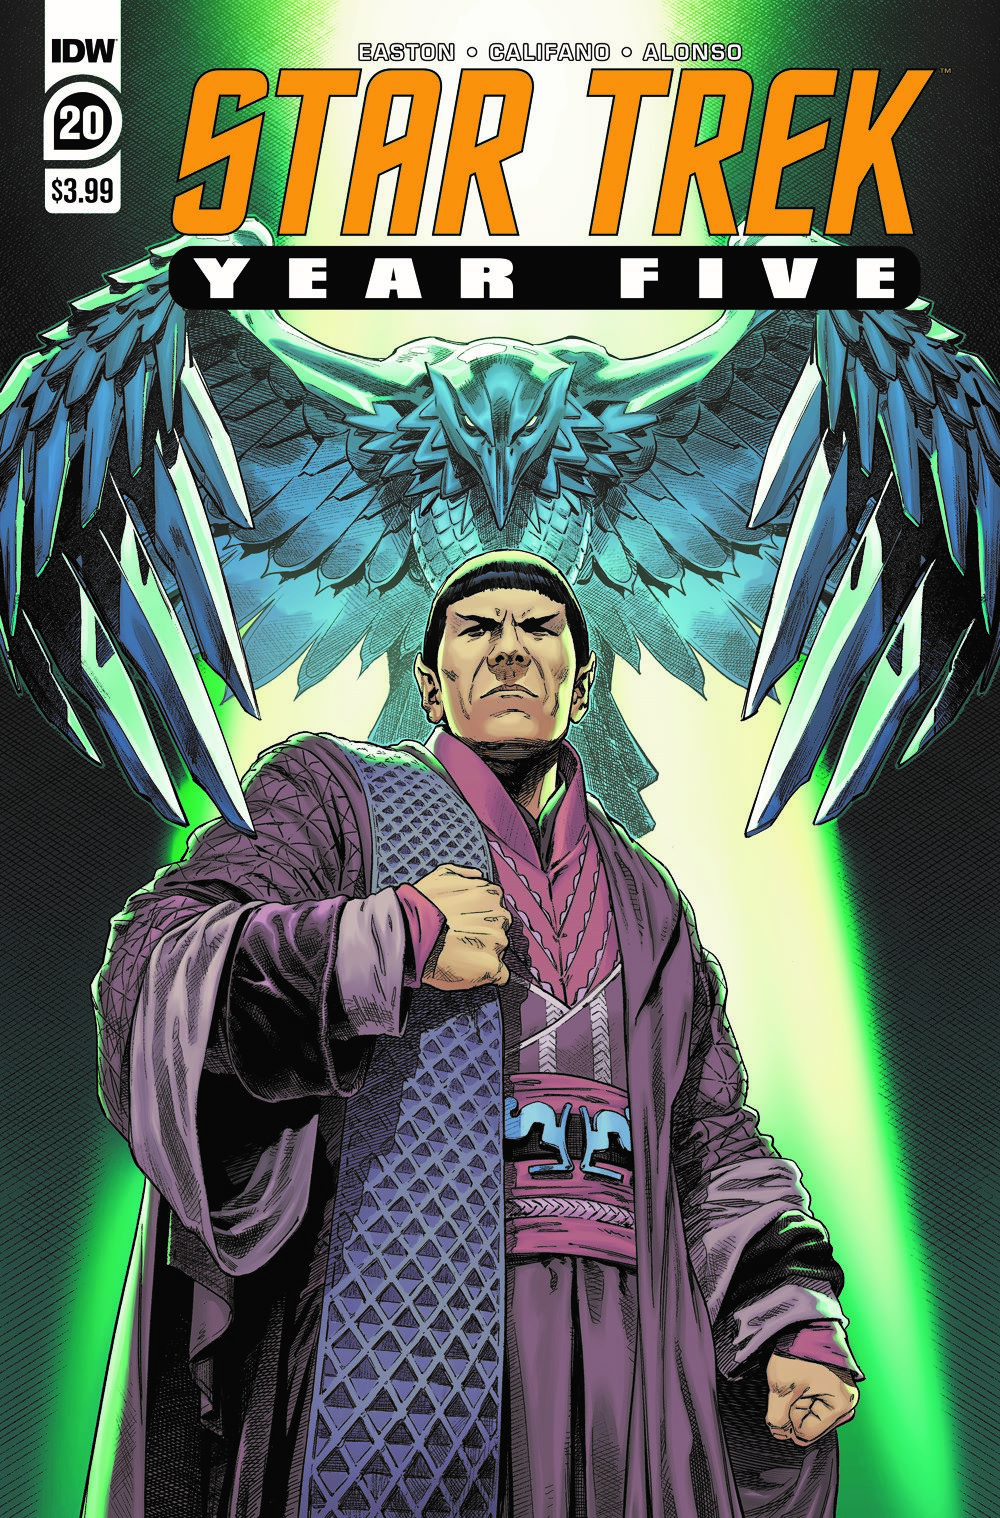 ST_YearFive20-cover ComicList Previews: STAR TREK YEAR FIVE #20